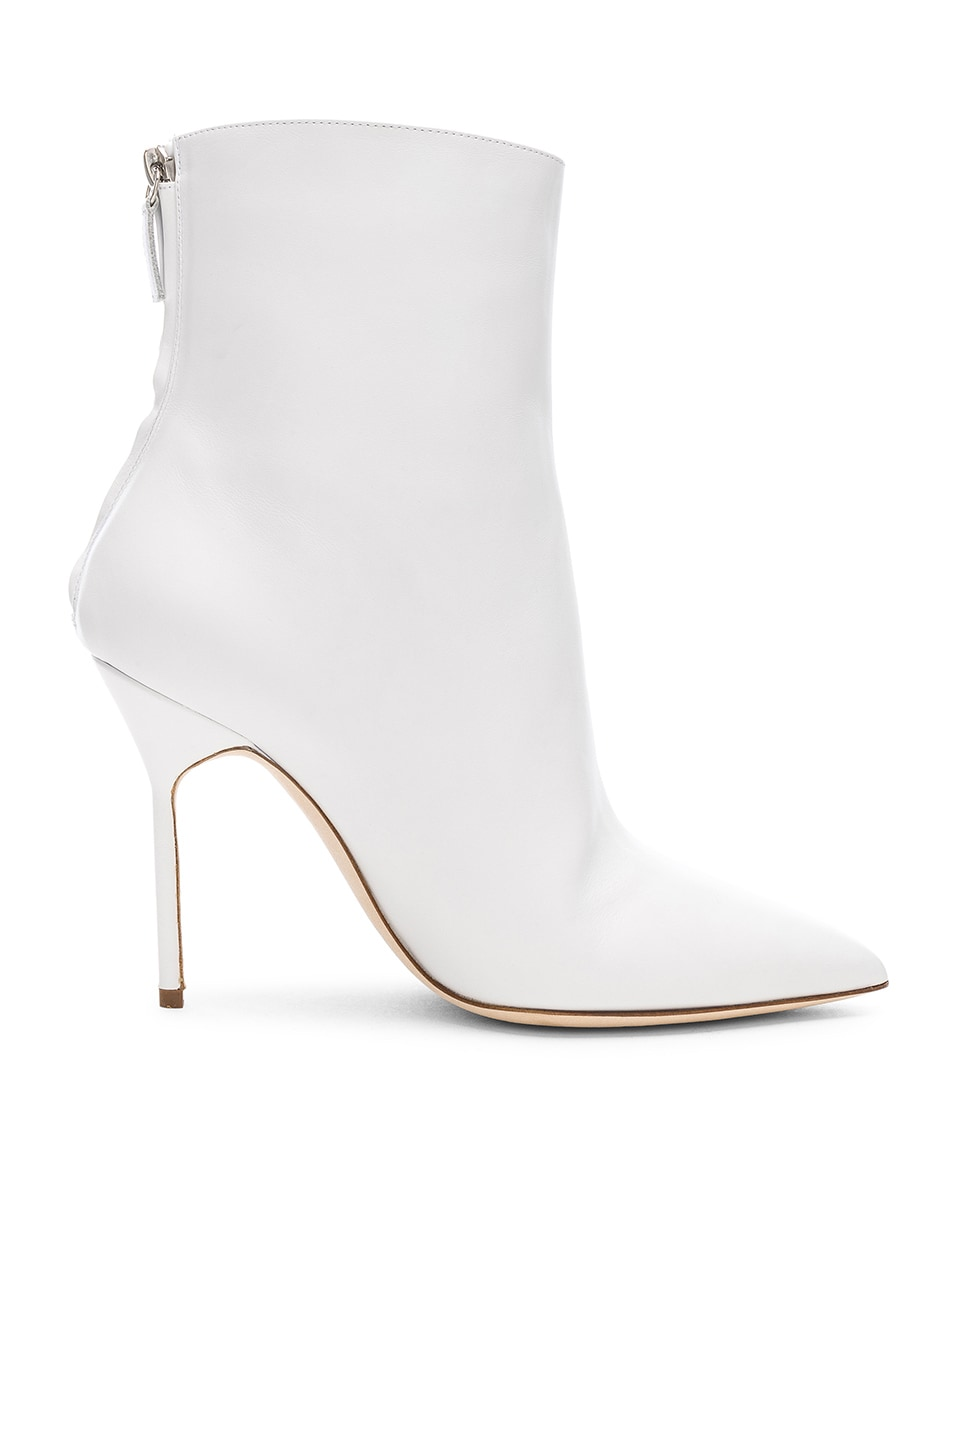 Image 1 of Manolo Blahnik Leather Zarinanu 105 Boots in White